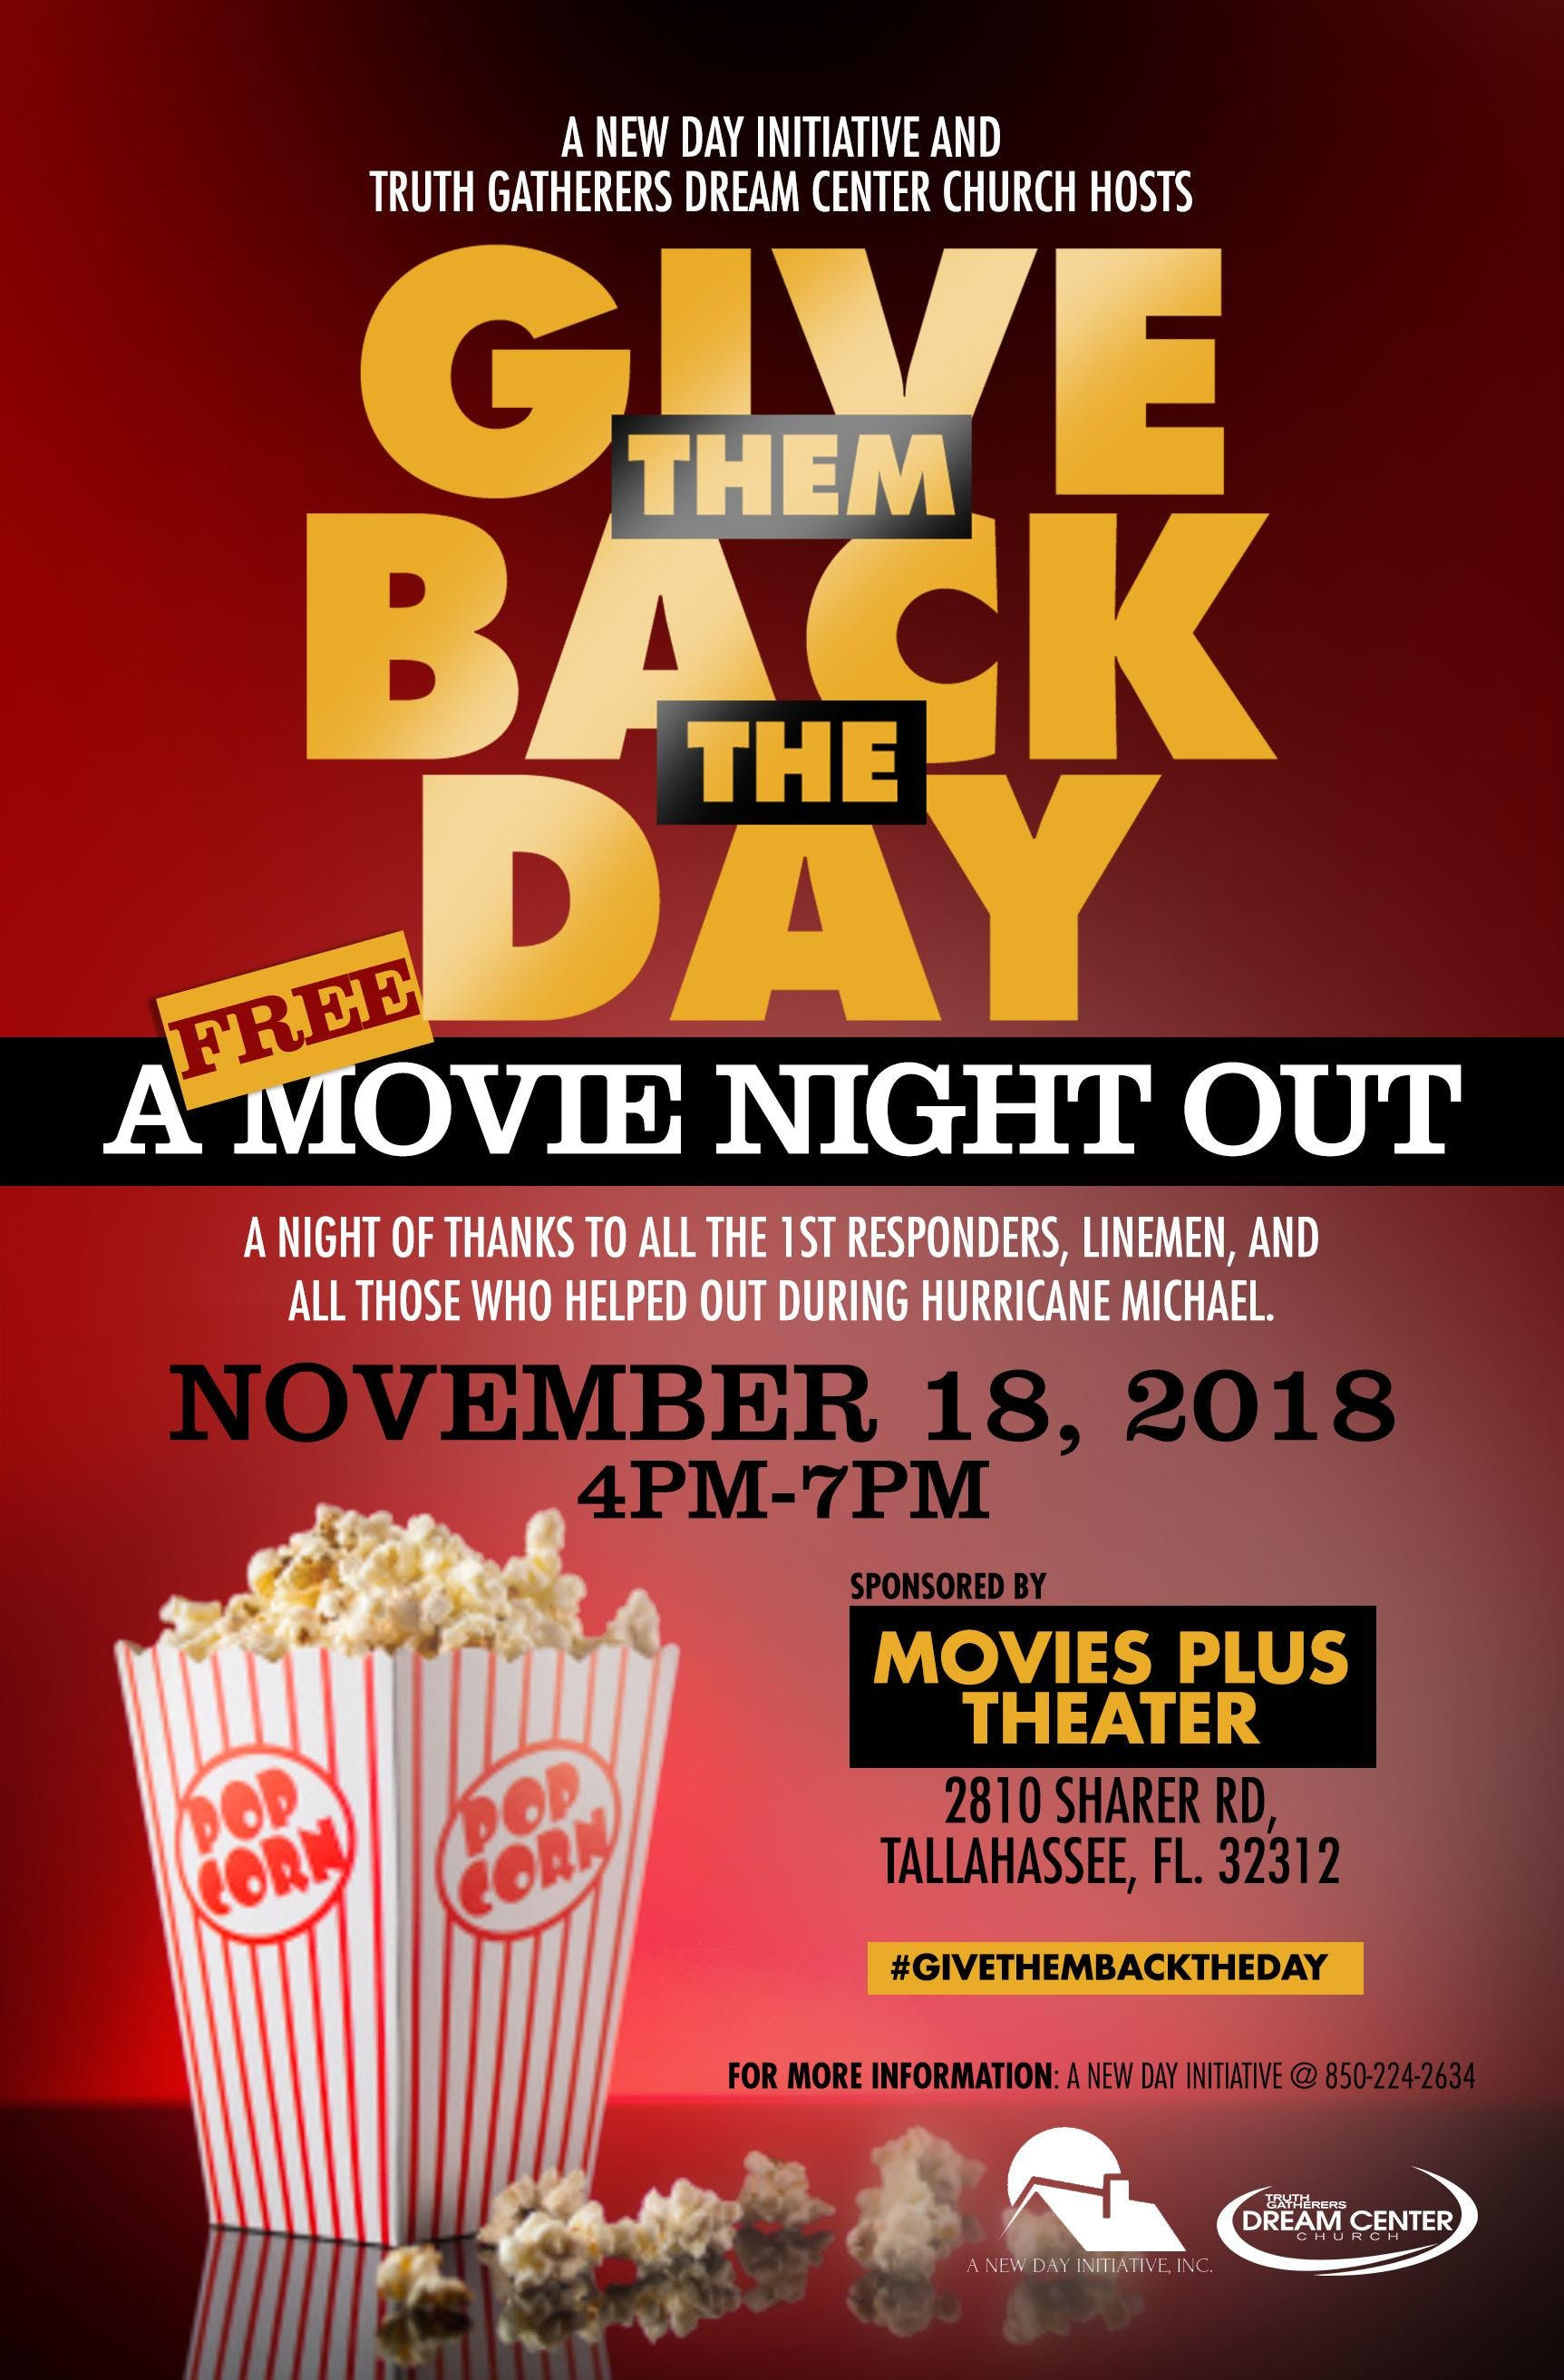 GIVE THEM BACK THE DAY! A NIGHT OF THANKS FOR